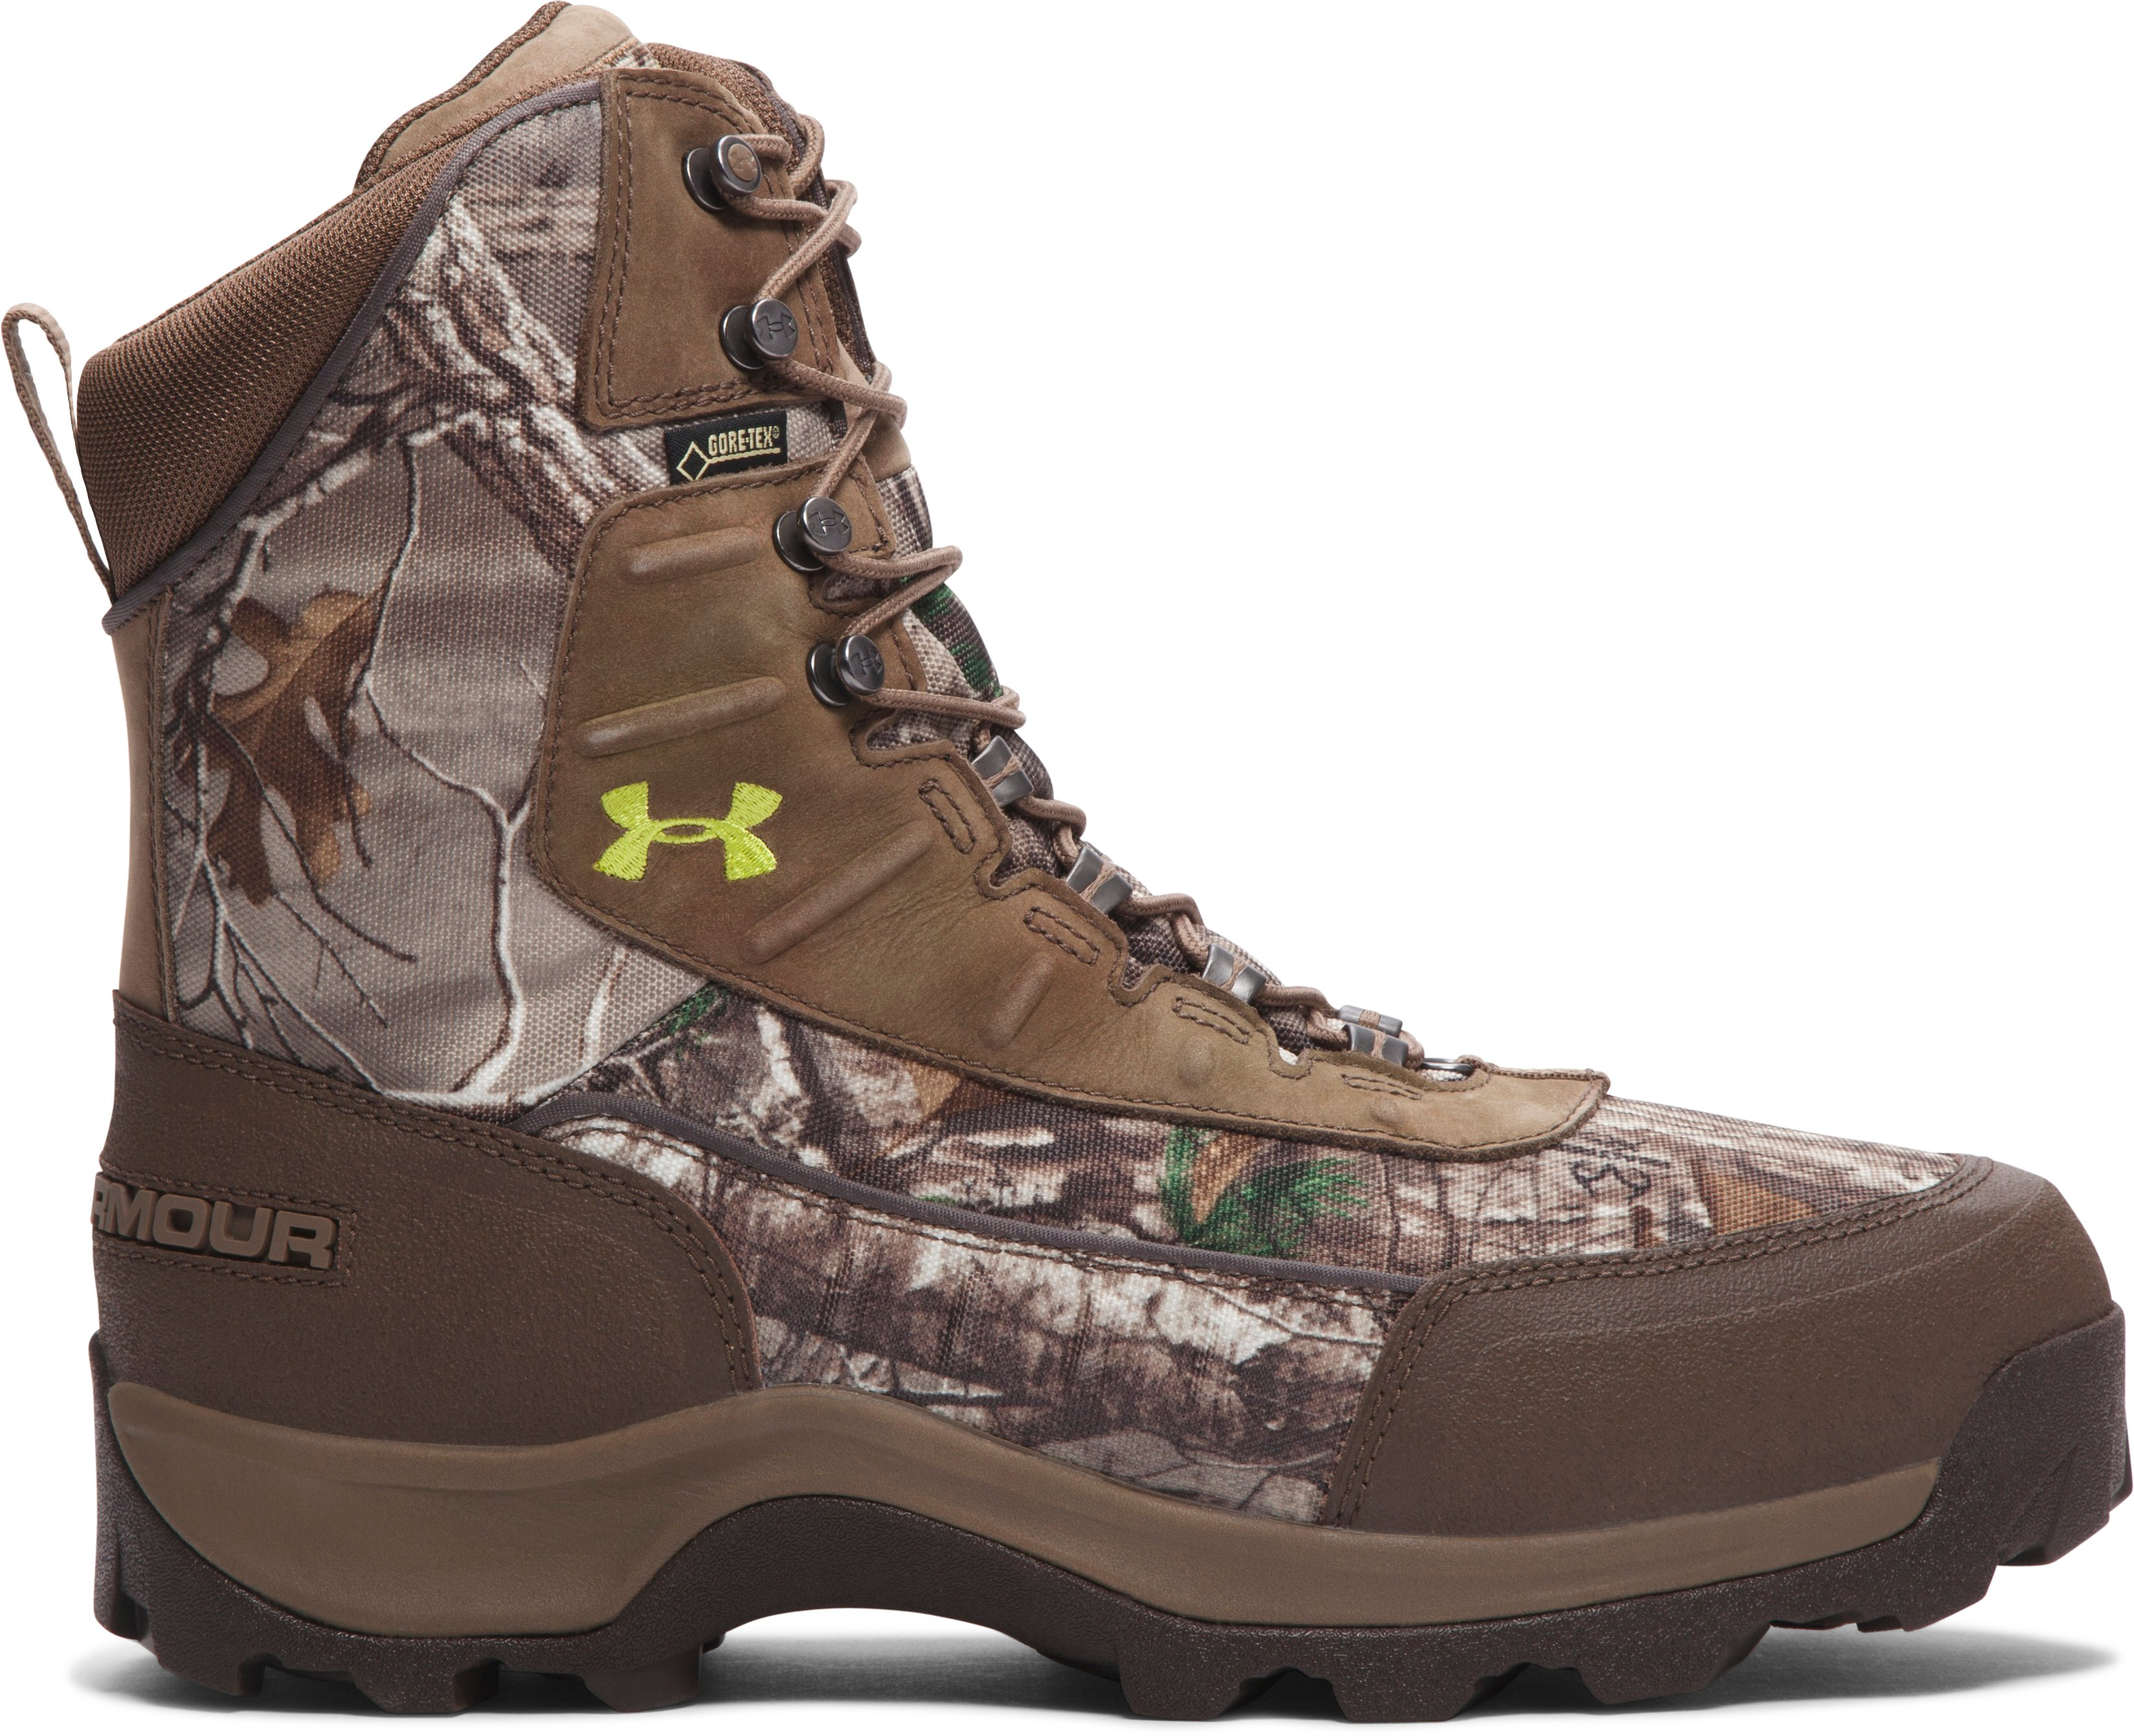 Men's UA Brow Tine Hunting Boots — 1200g, REALTREE AP-XTRA